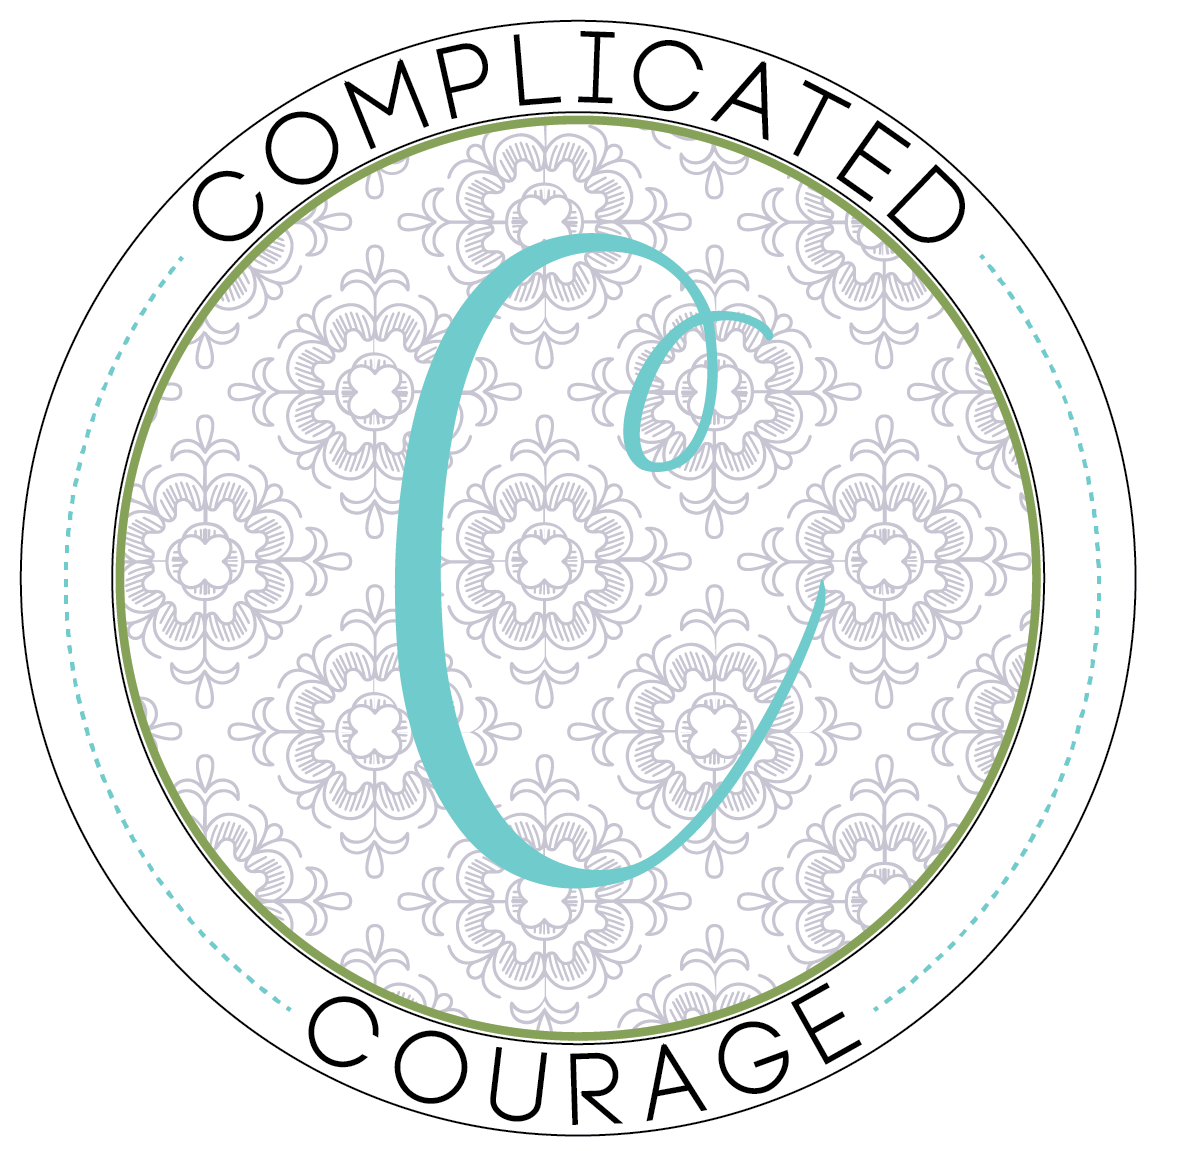 Complicated Courage